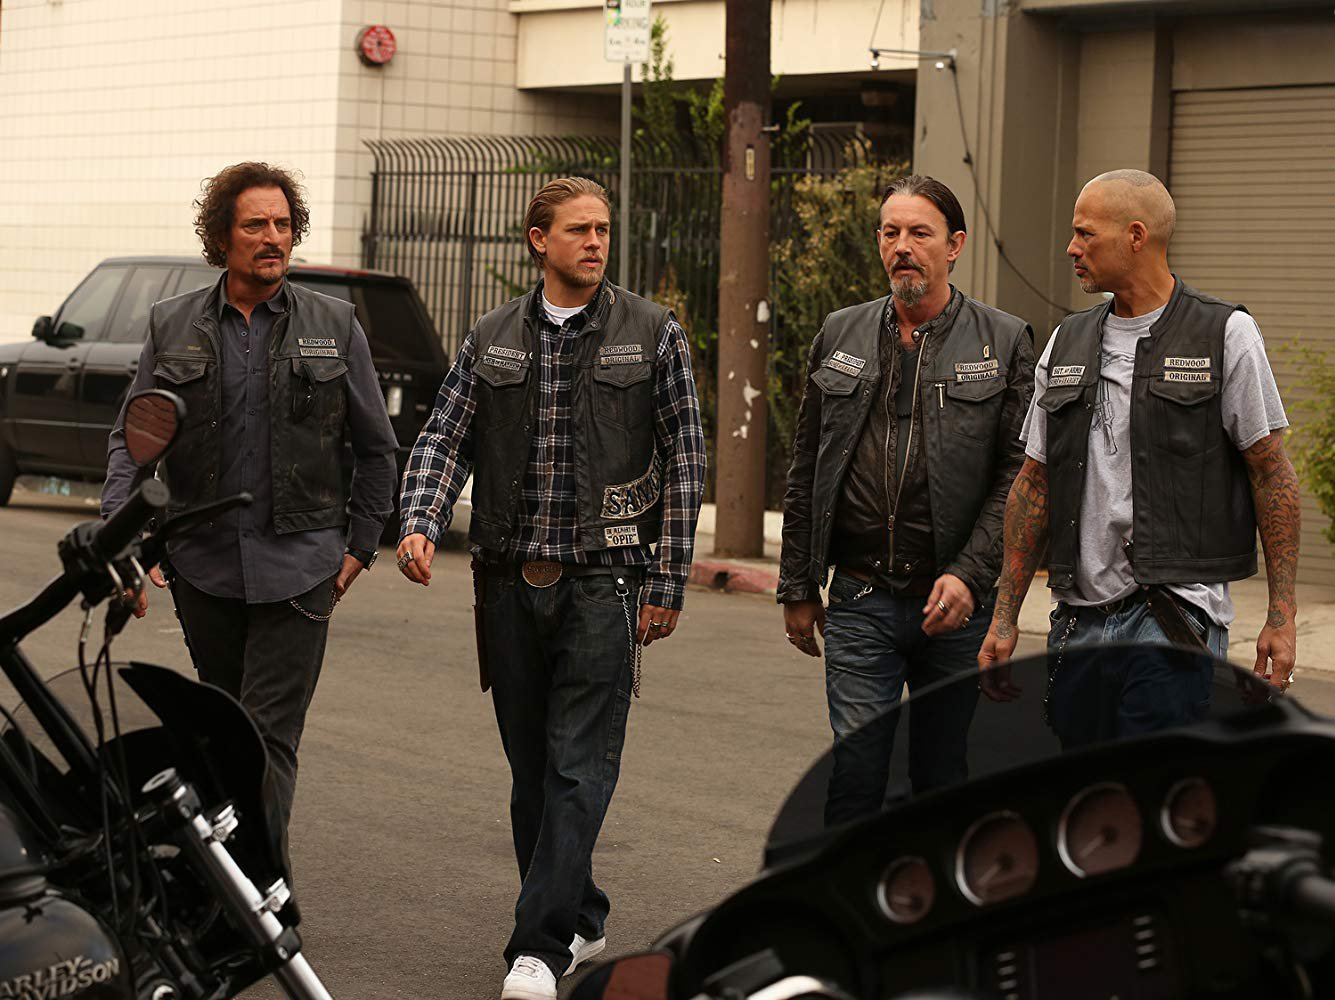 Sons of Anarchy spin-off given release date Credit: FX Networks